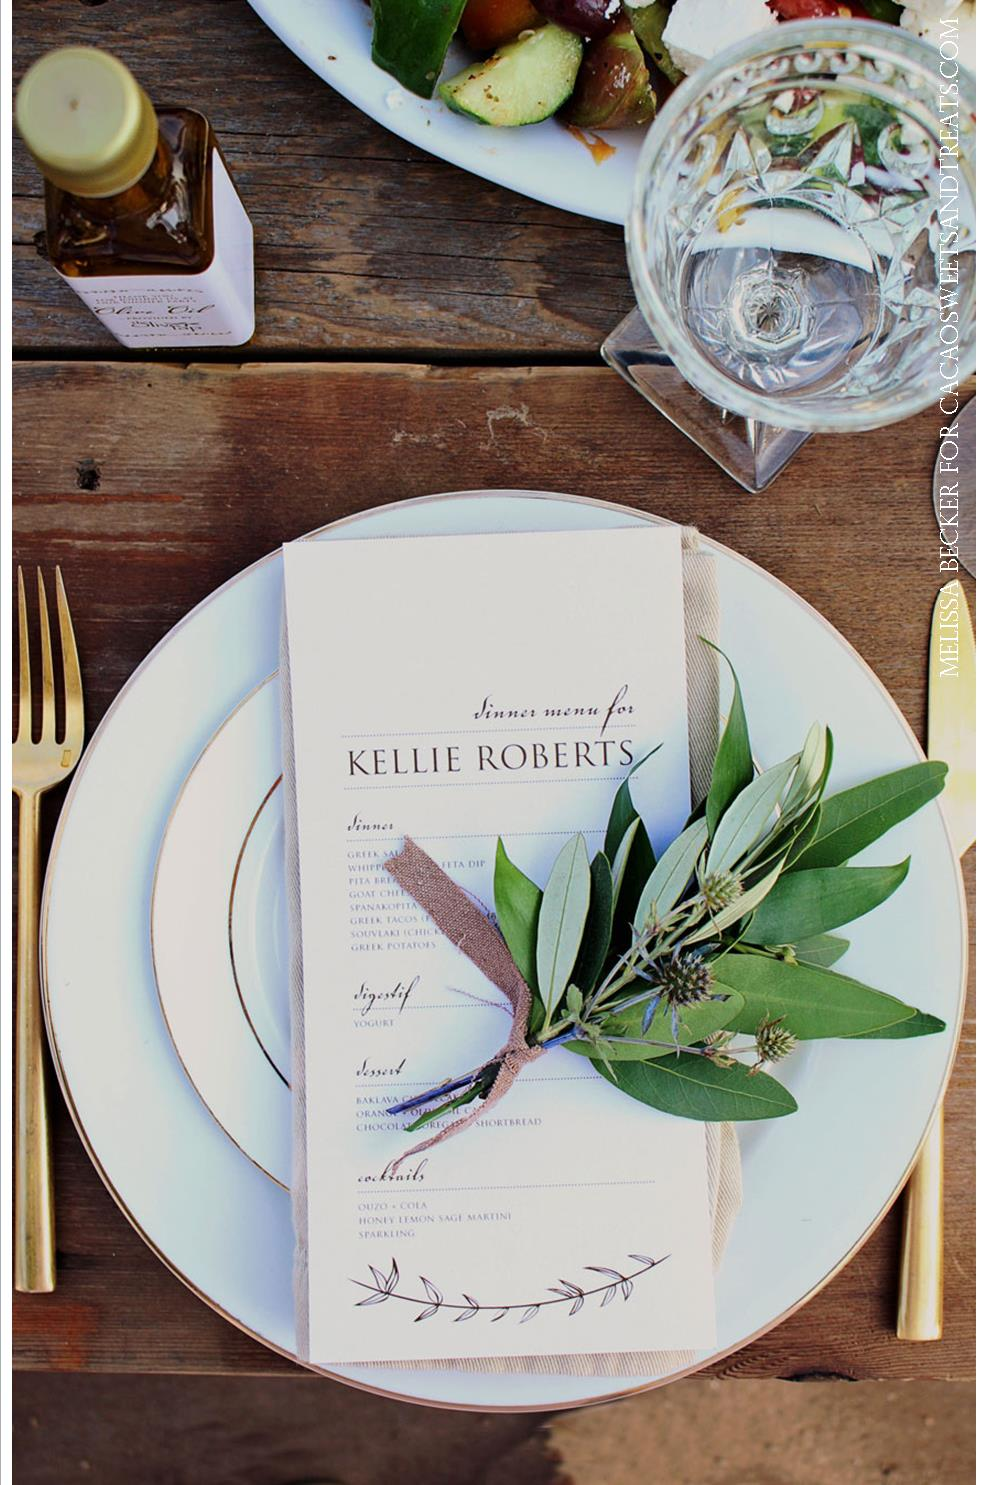 menu by paper route collective melissa becker photography for cacoa sweets and treats.jpg